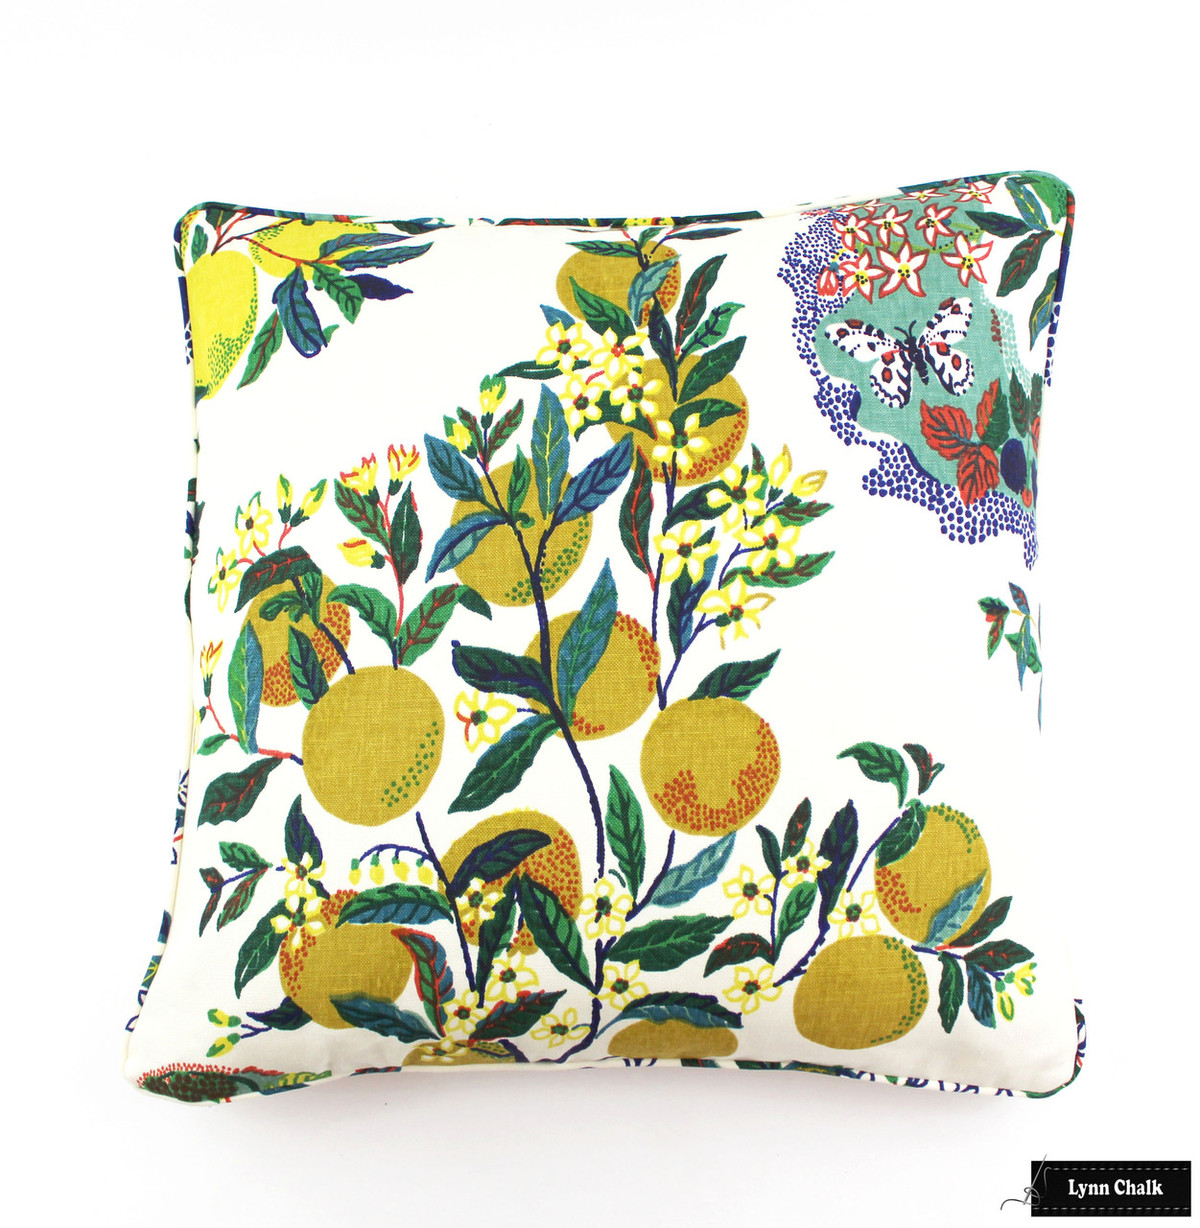 schumacher citrus garden custom pillows with self welting in primary both sides comes in linen and also indoor outdoor fabric 2 pillow minimum order